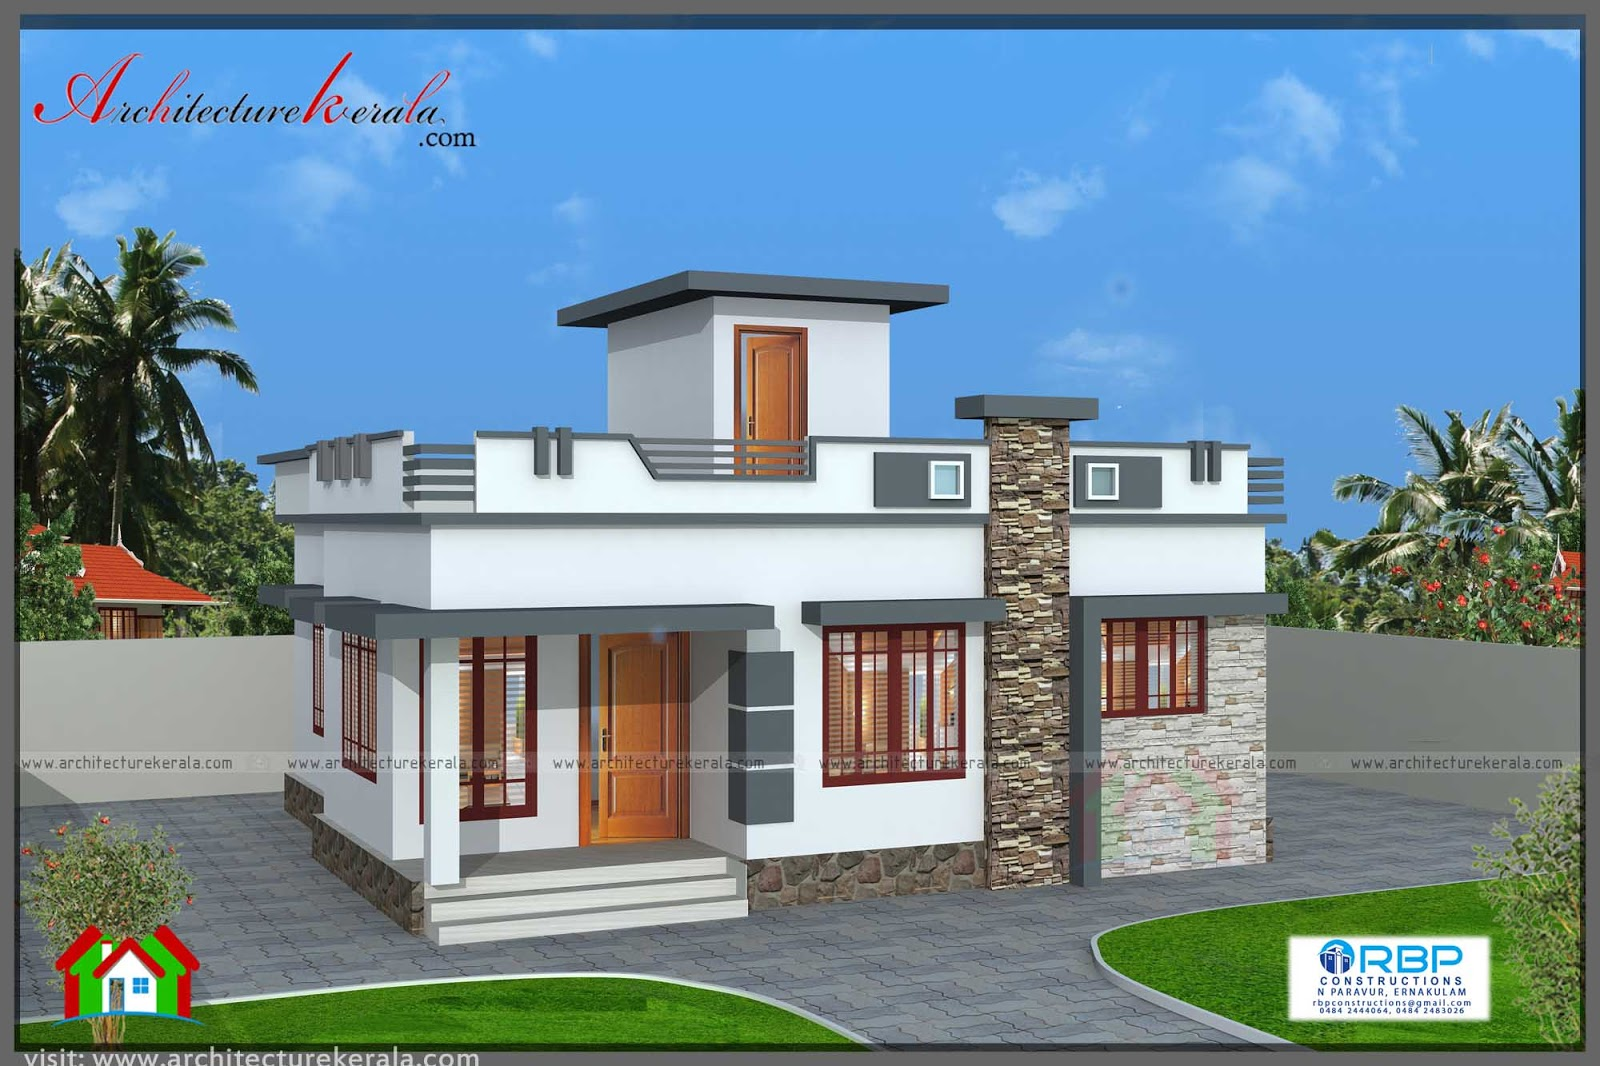 700 sqft plan and elevation for middle class family for Home design 700